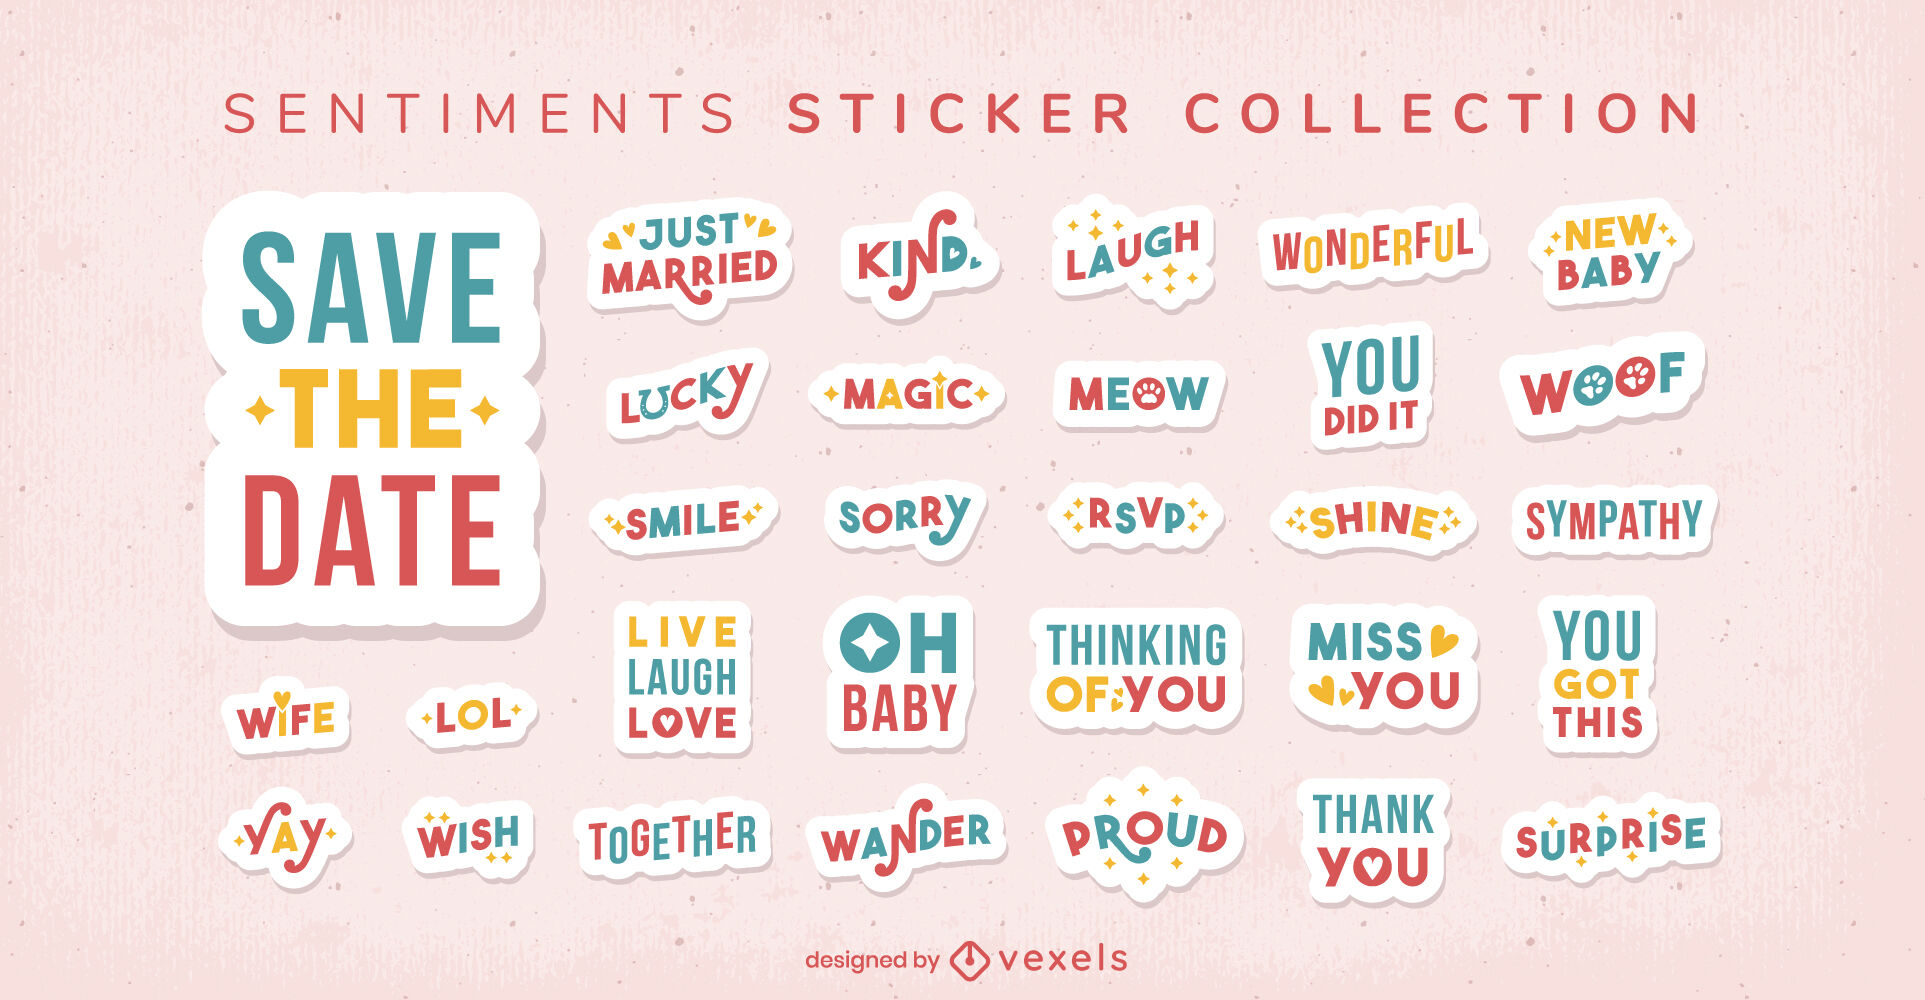 Adorable sticker quotes collection